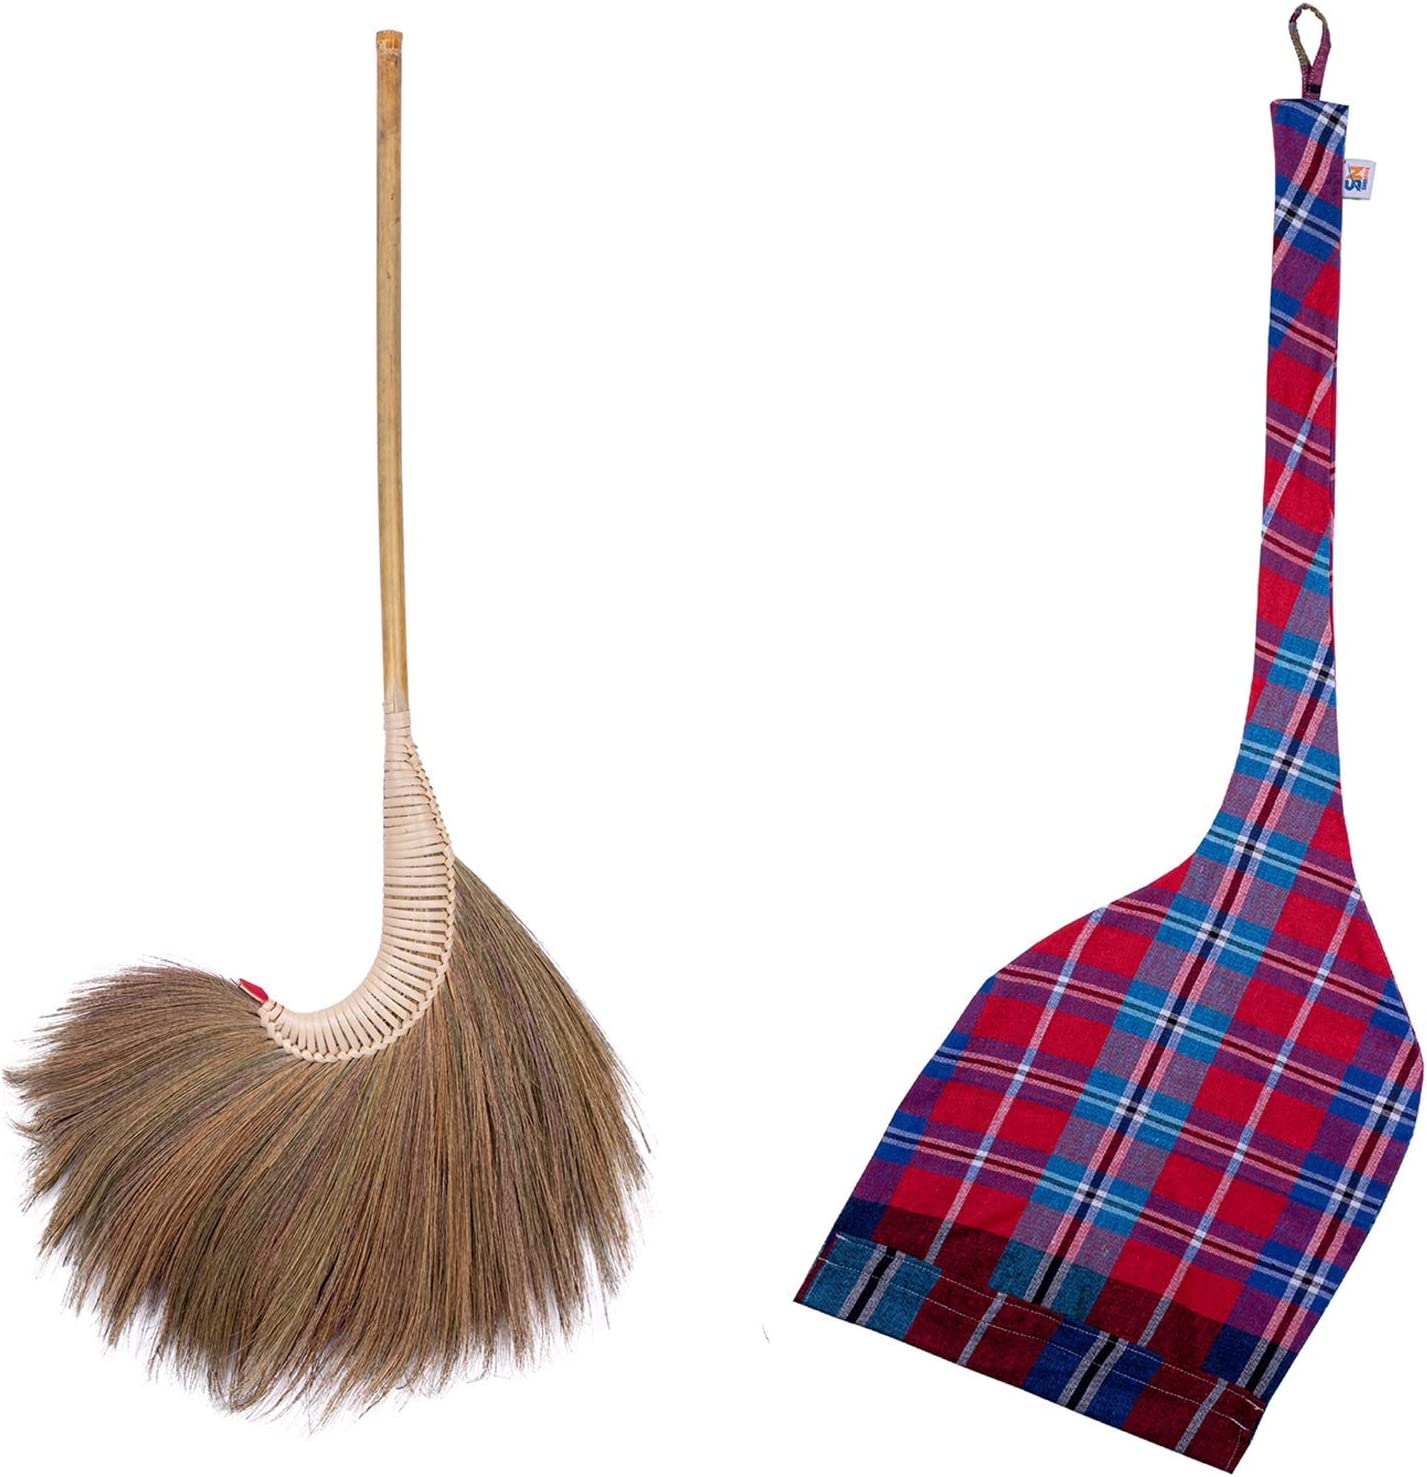 service 67% OFF of fixed price Natural Grass Broom Handmade Contemporary 100%